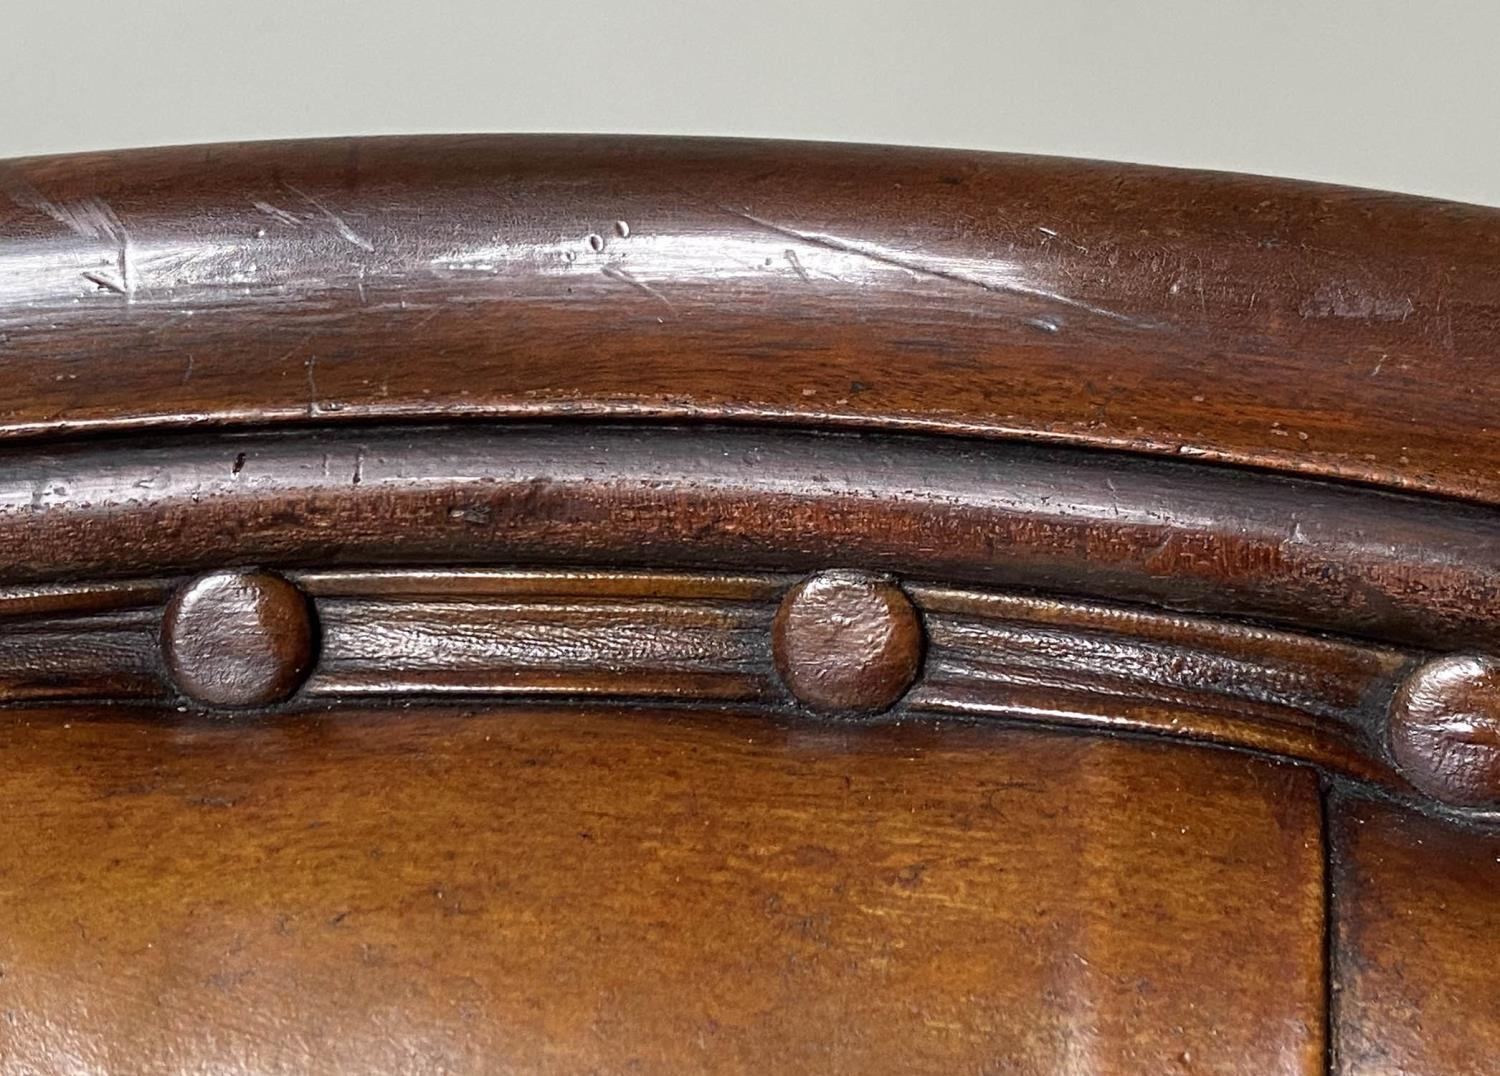 LIBRARY ARMCHAIR, early Victorian mahogany, with hand dyed tobacco brown leather, buttoned back, - Image 5 of 9